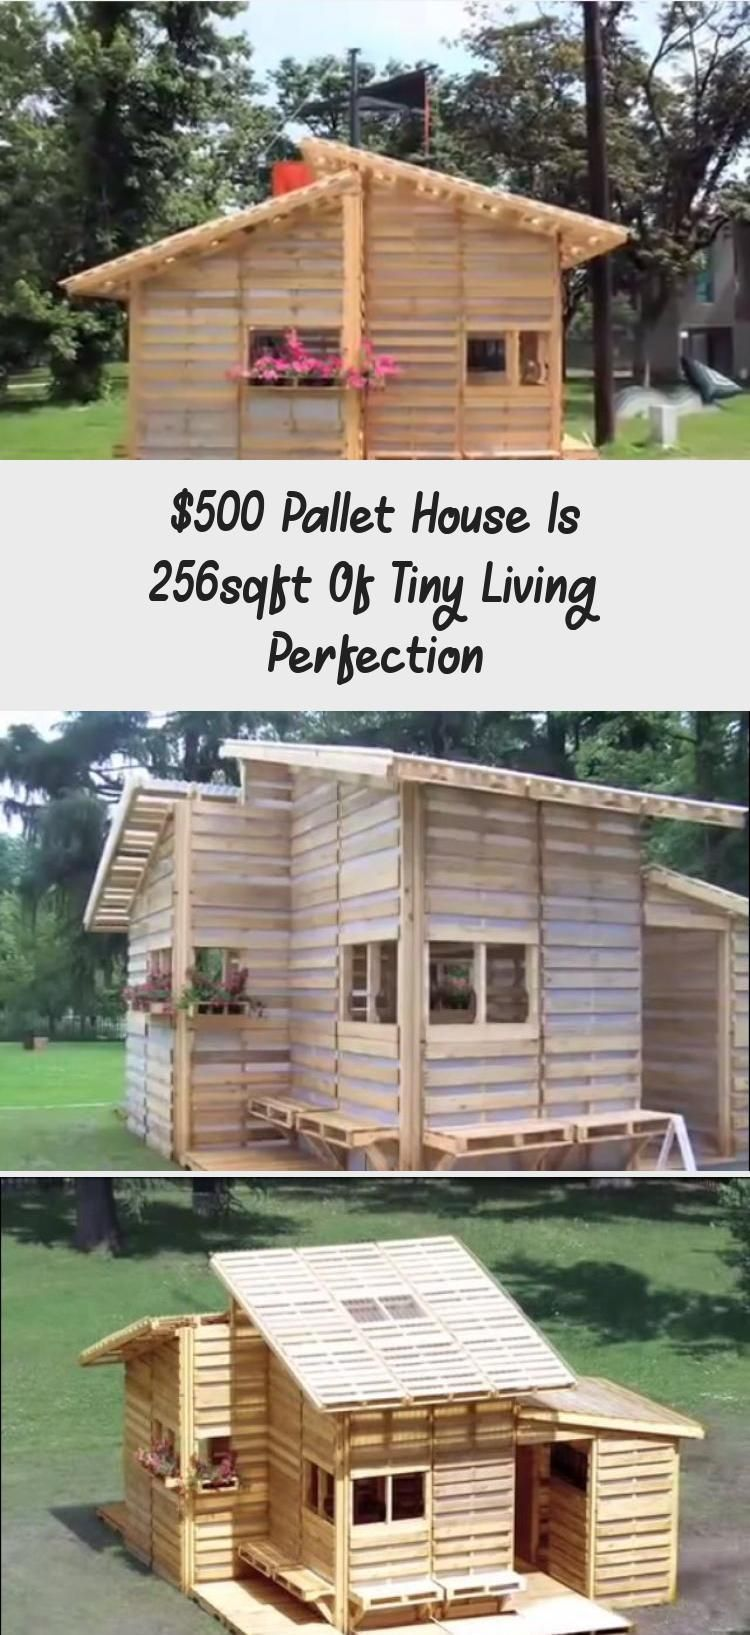 Tiny Pallet House Built For 500 Tinyhousebedroom Tinyhouseonwheels Tinyhouse Built House Pallet Tiny Tin Pallet House Pallet House Plans Pallet Shed